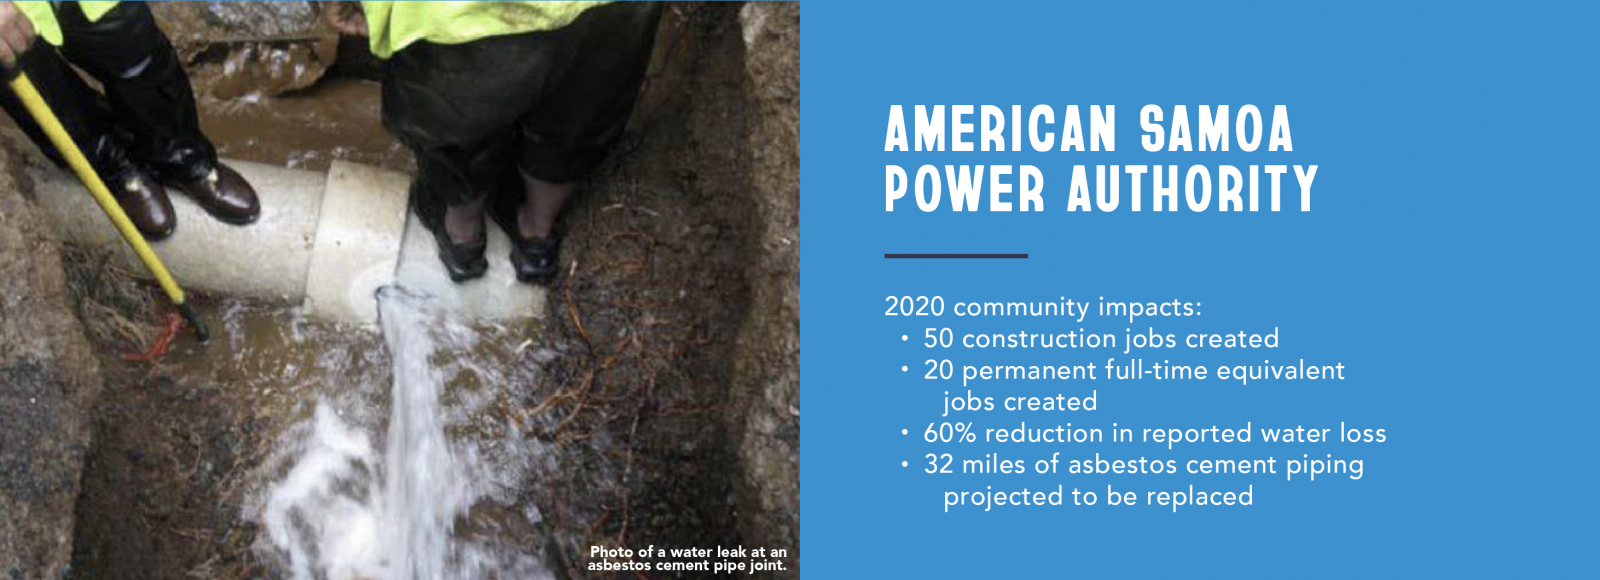 An image of a photo next to a graphic of white text over a blue background. The photo shows a pipe leaking water, with two workers standing near it (only the lower halves of their bodies are shown). The text reads: American Samoa Power Authority / 2020 community impacts: / 50 construction jobs created, 20 permanent full-time equivalent jobs created, 60% reduction in reported water loss, 32 miles of asbestos cement piping projected to be replaced